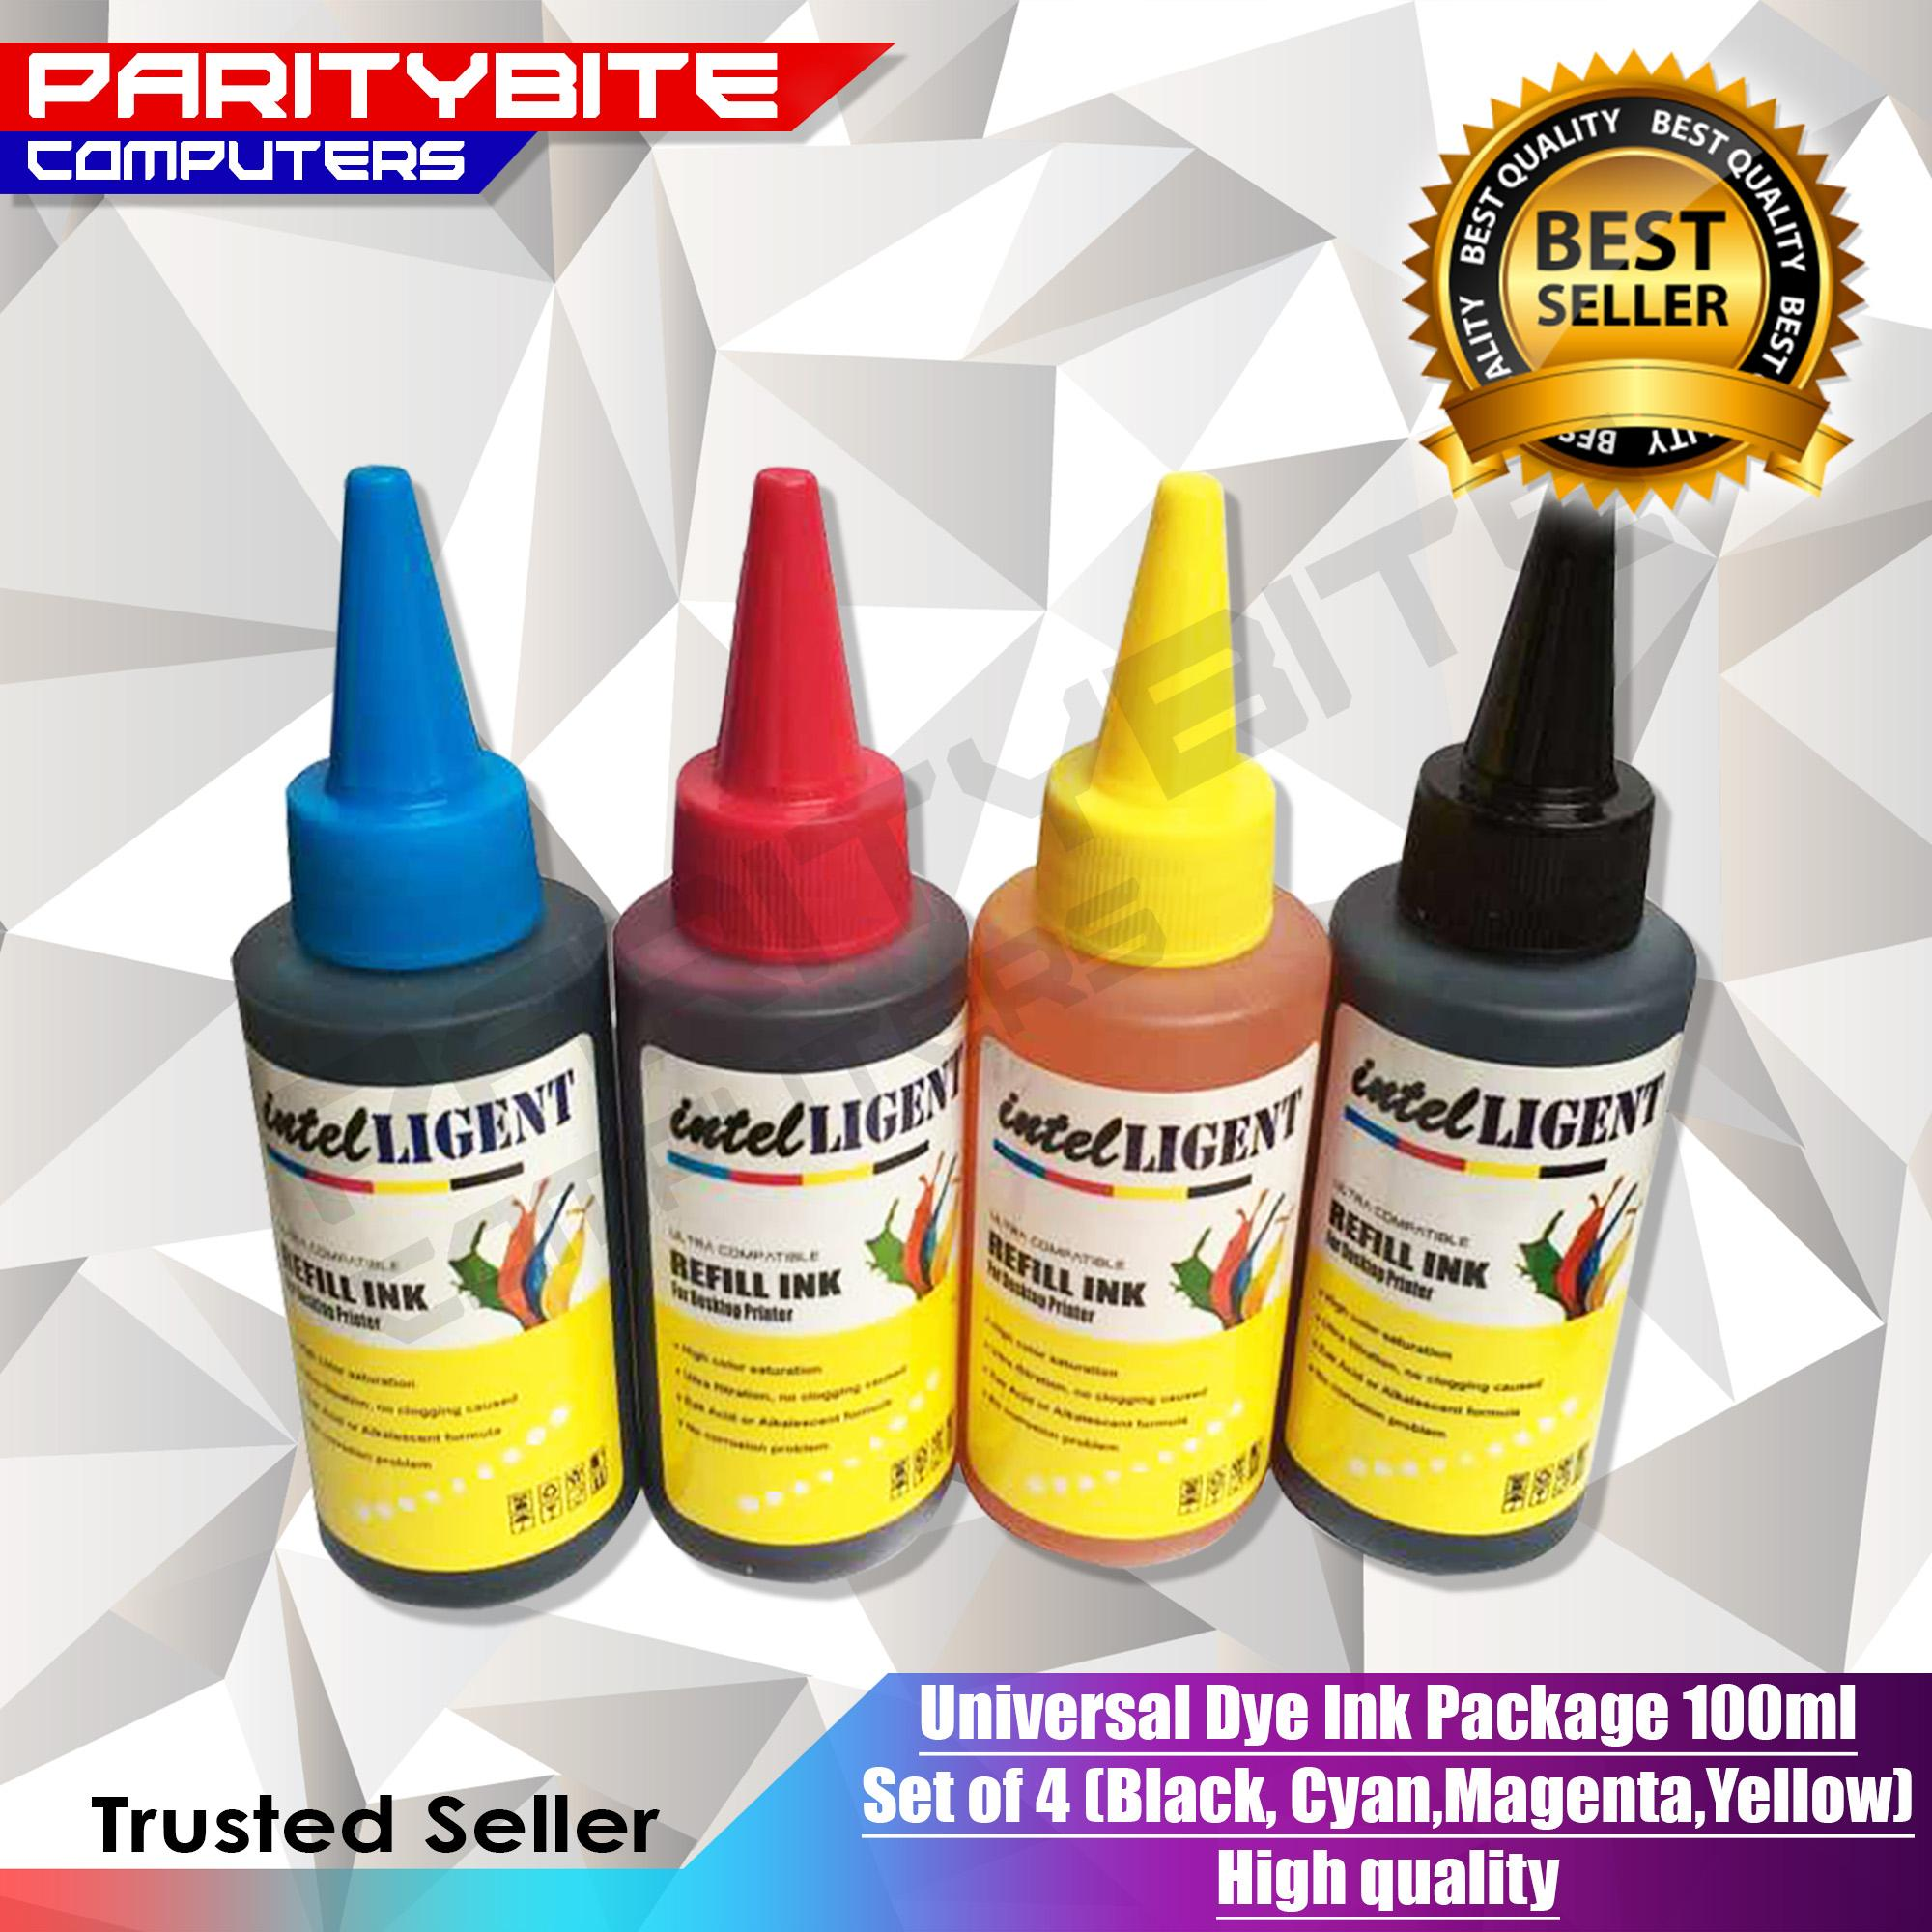 Universal Dye Ink Package 100ml Set Of 4 (black, Cyan,magenta,yellow) High Quality By Paritybite Computers.